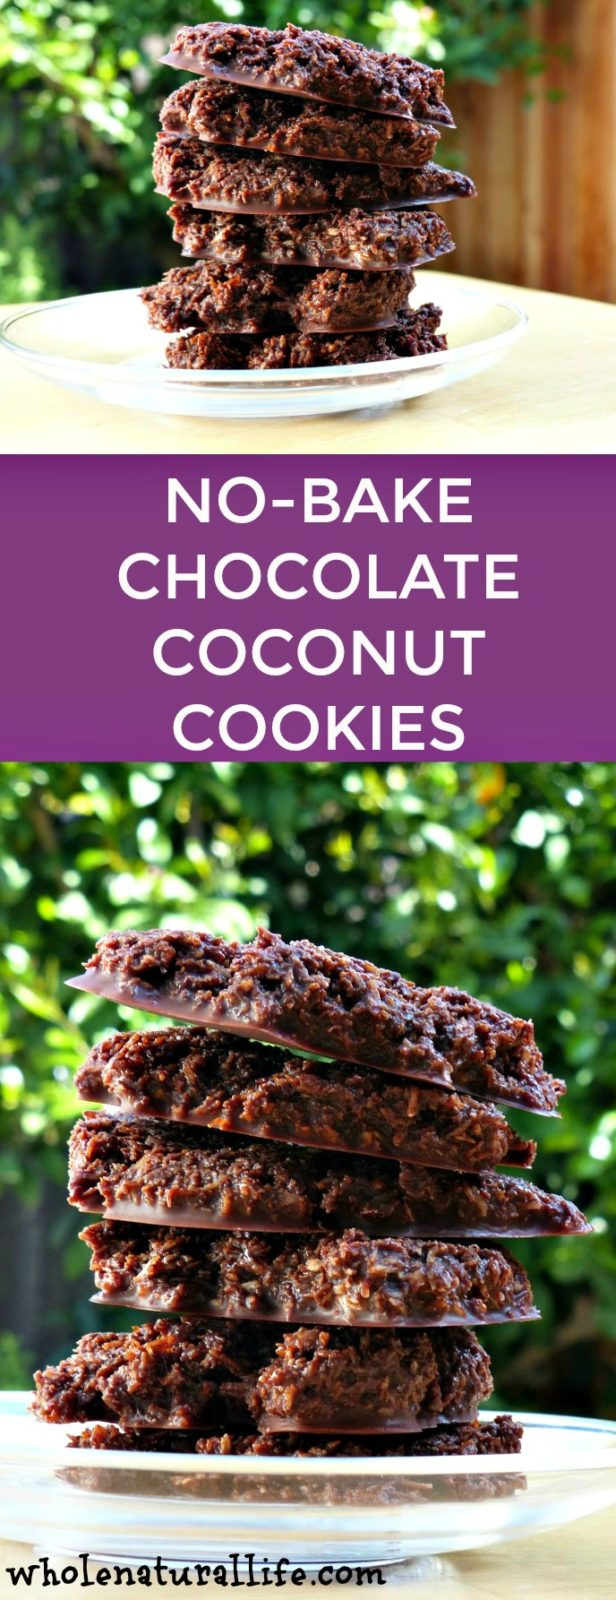 Gluten-free coconut cookies | Paleo coconut cookies | Healthy no-bake cookies | Chocolate coconut cookies